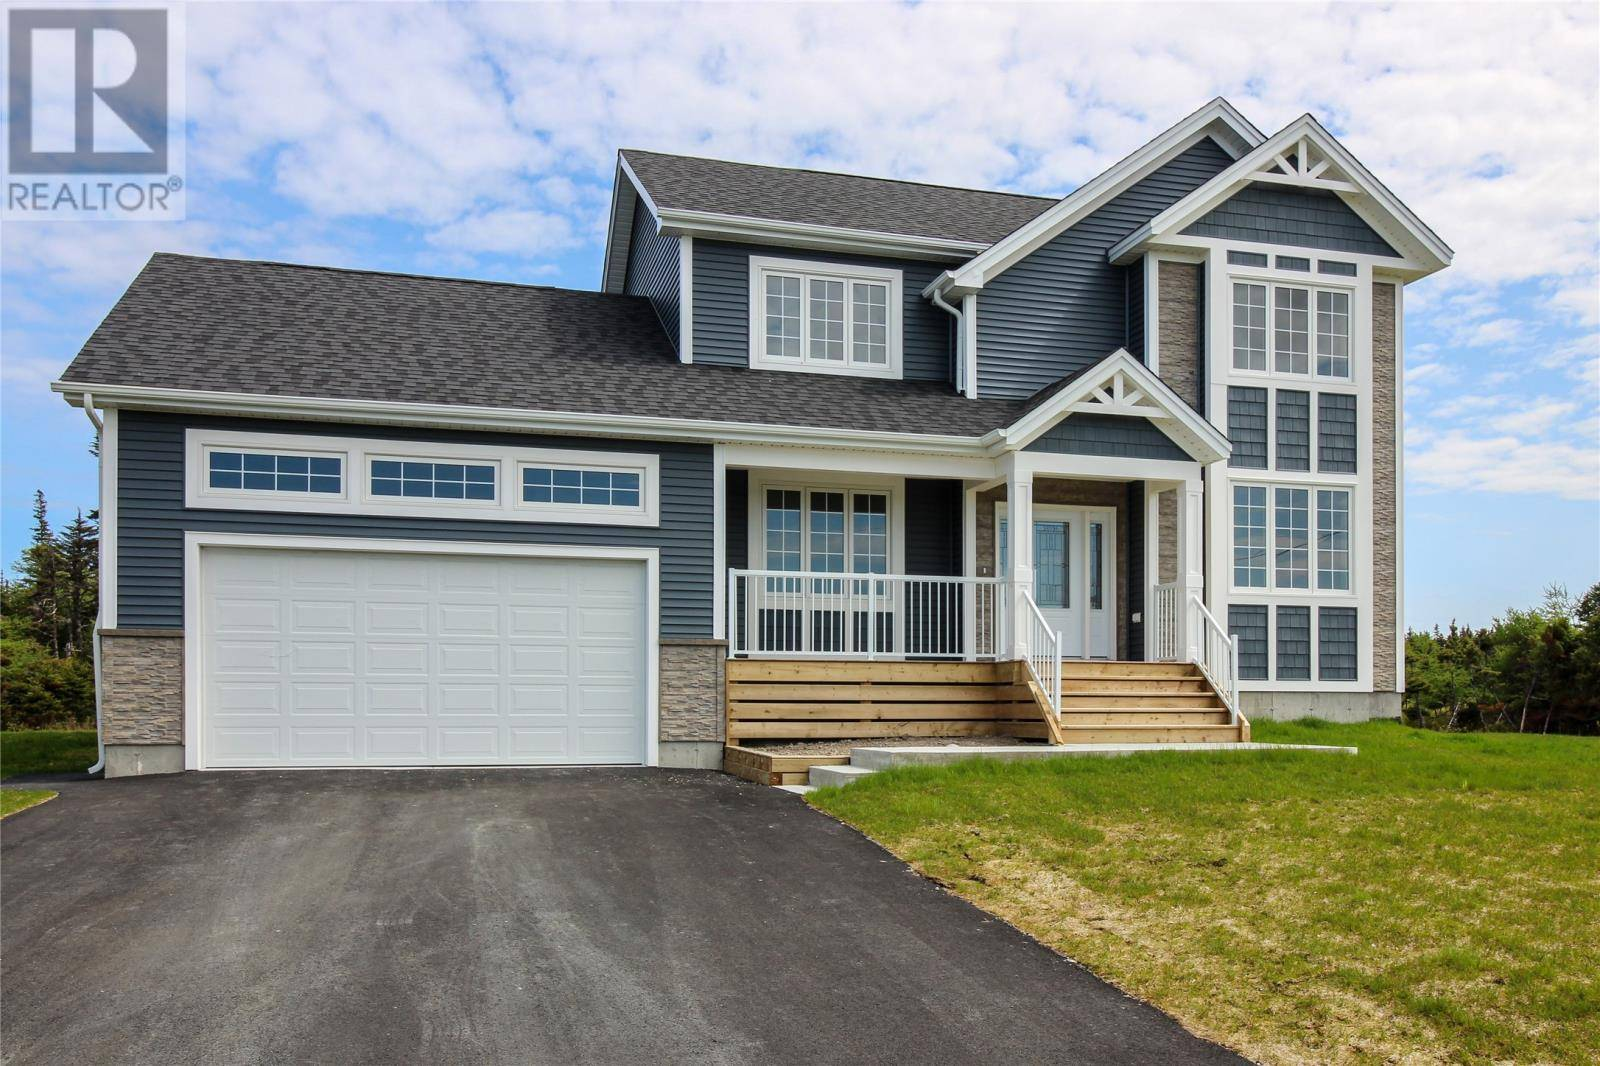 House for sale at 25 Sandalwood Dr Logy Bay-middle Cove-outer Cove Newfoundland - MLS: 1210083